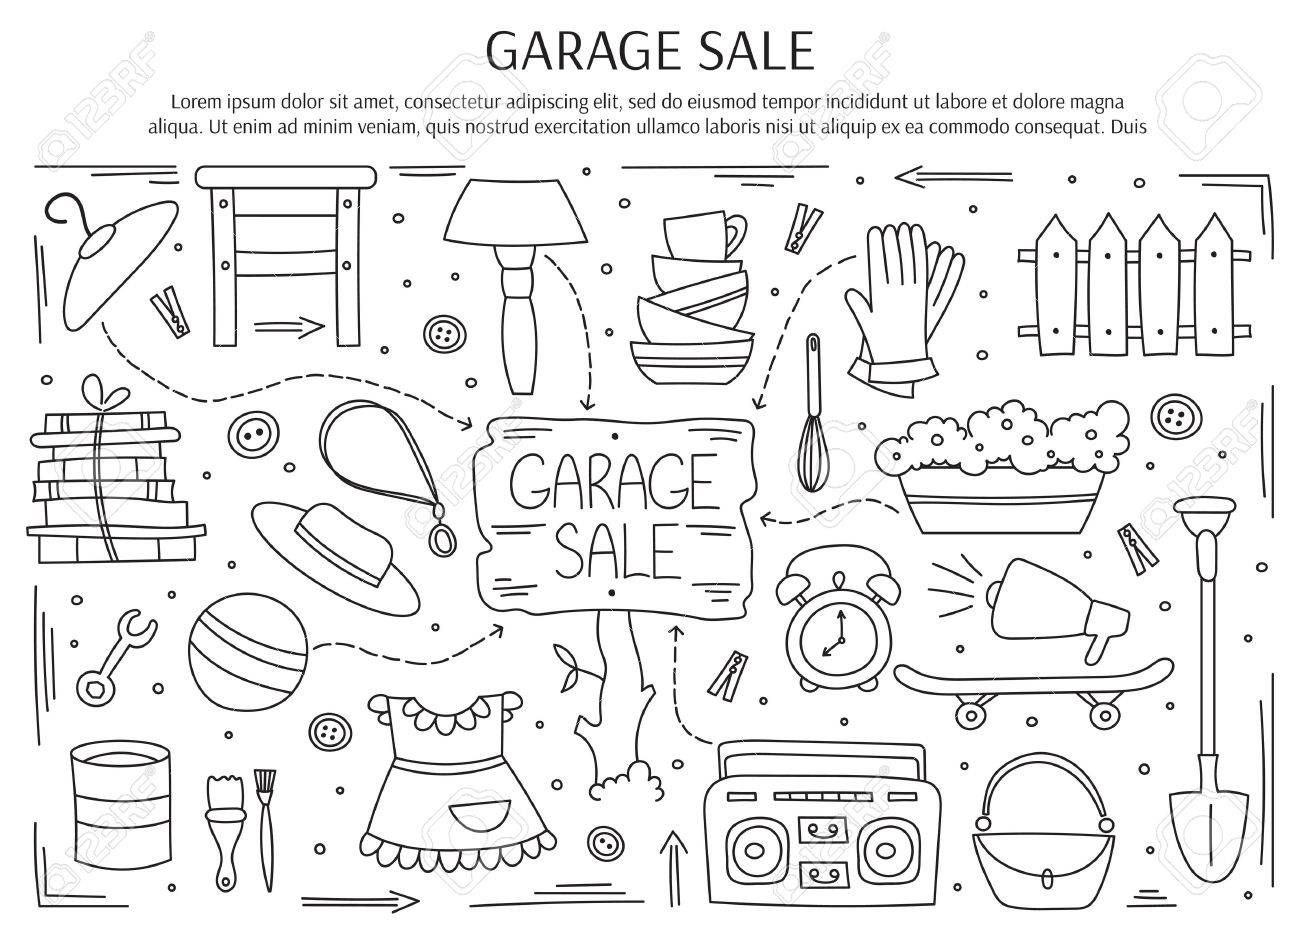 Garage sale, household used goods. Hand drawn black on white line elements. horizontal banner template. Doodle background. For banners and posters, brochures, invitations, website designs. - 67675419